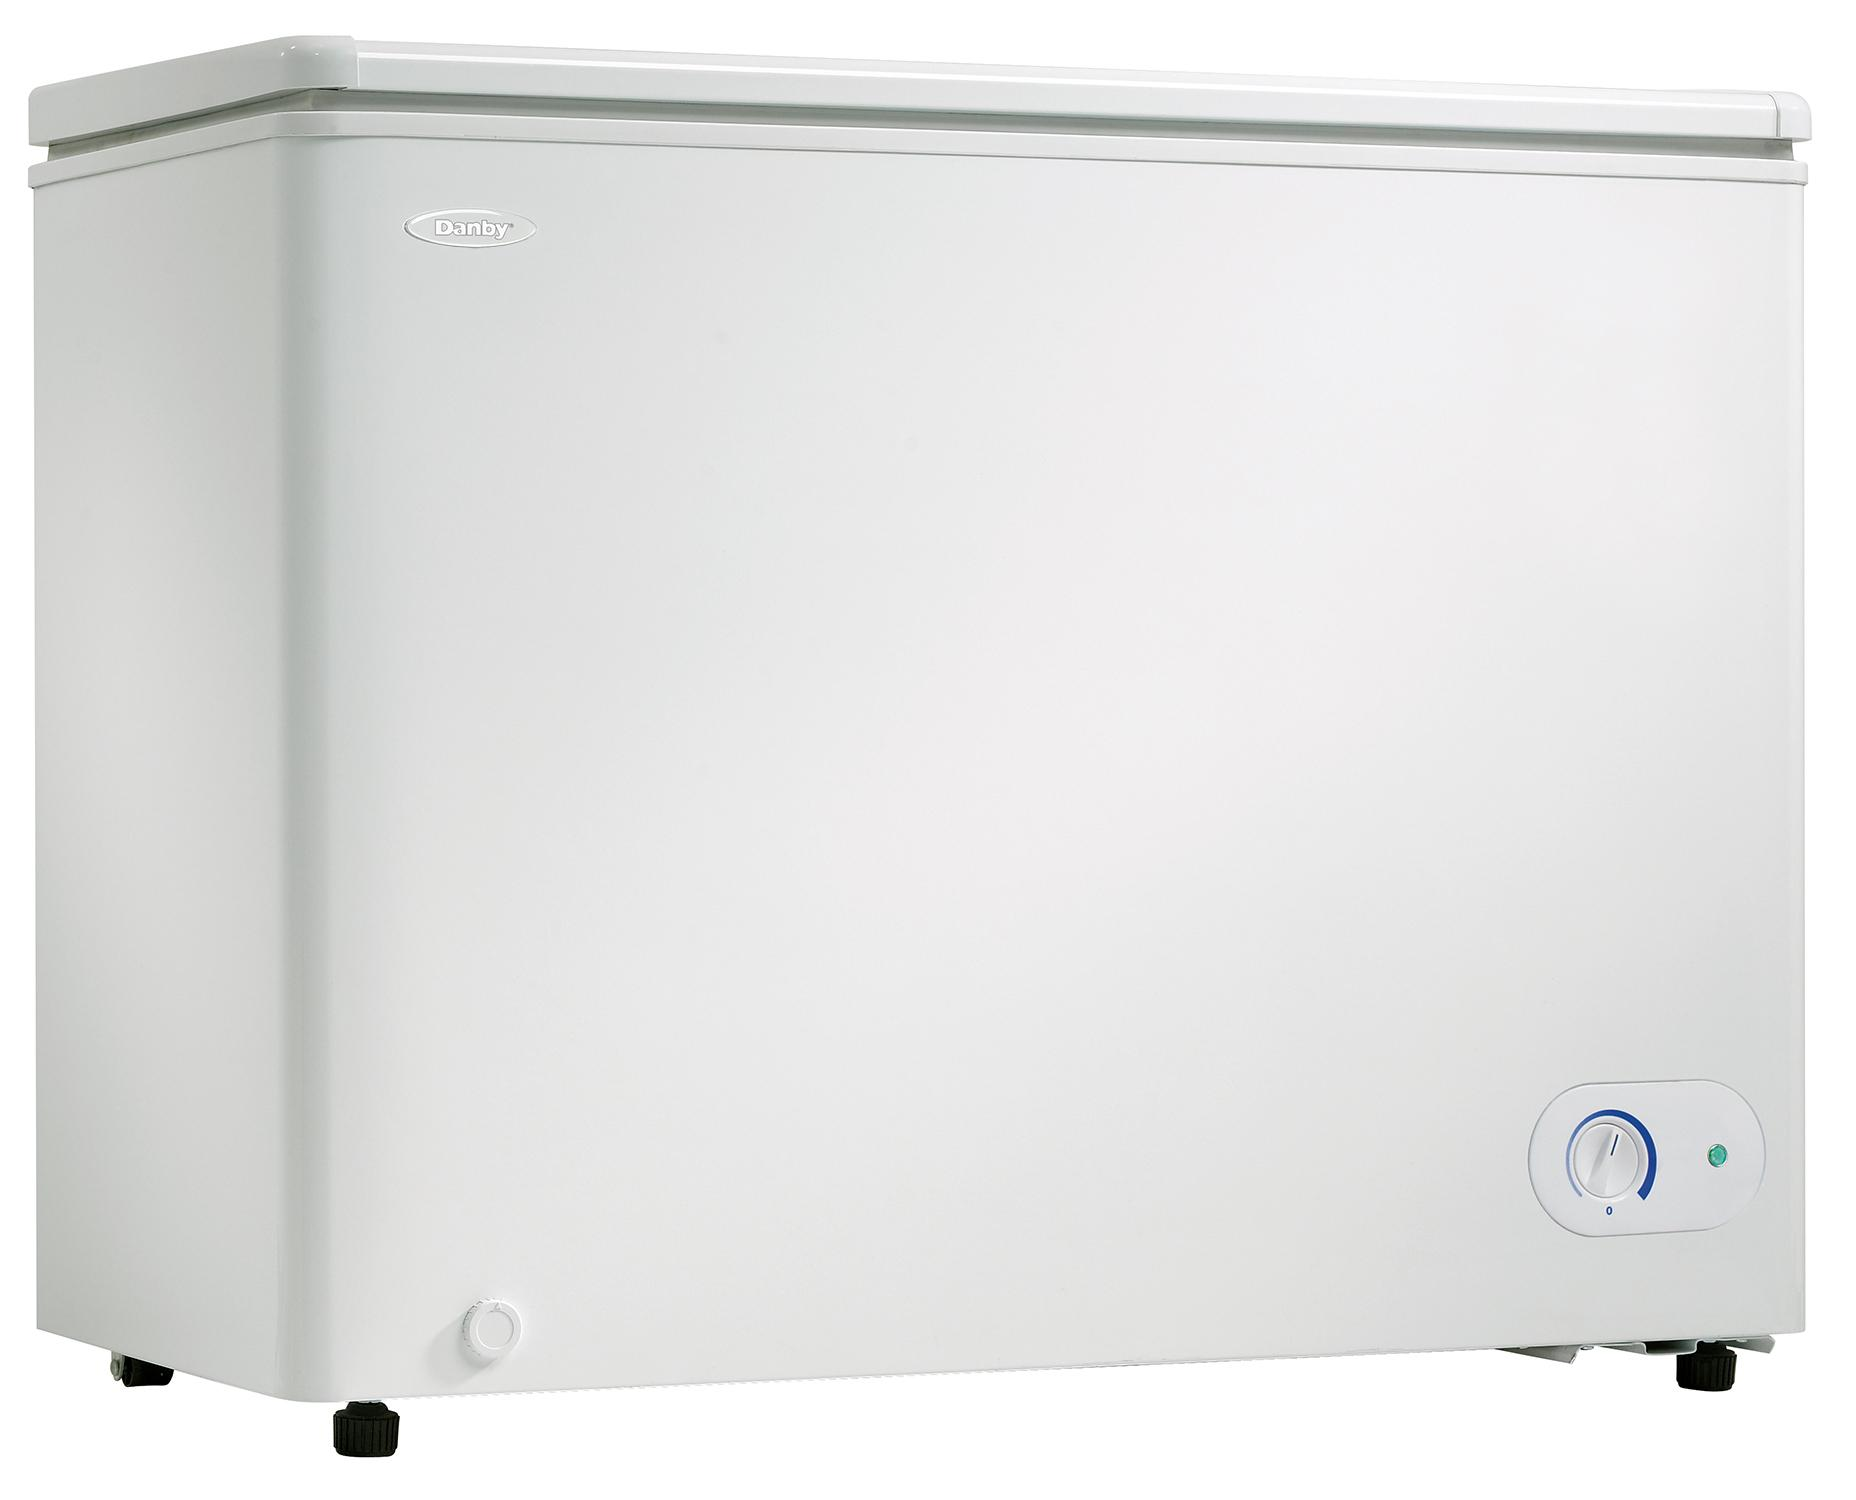 danbyu0027s chest freezer - Chest Freezers On Sale